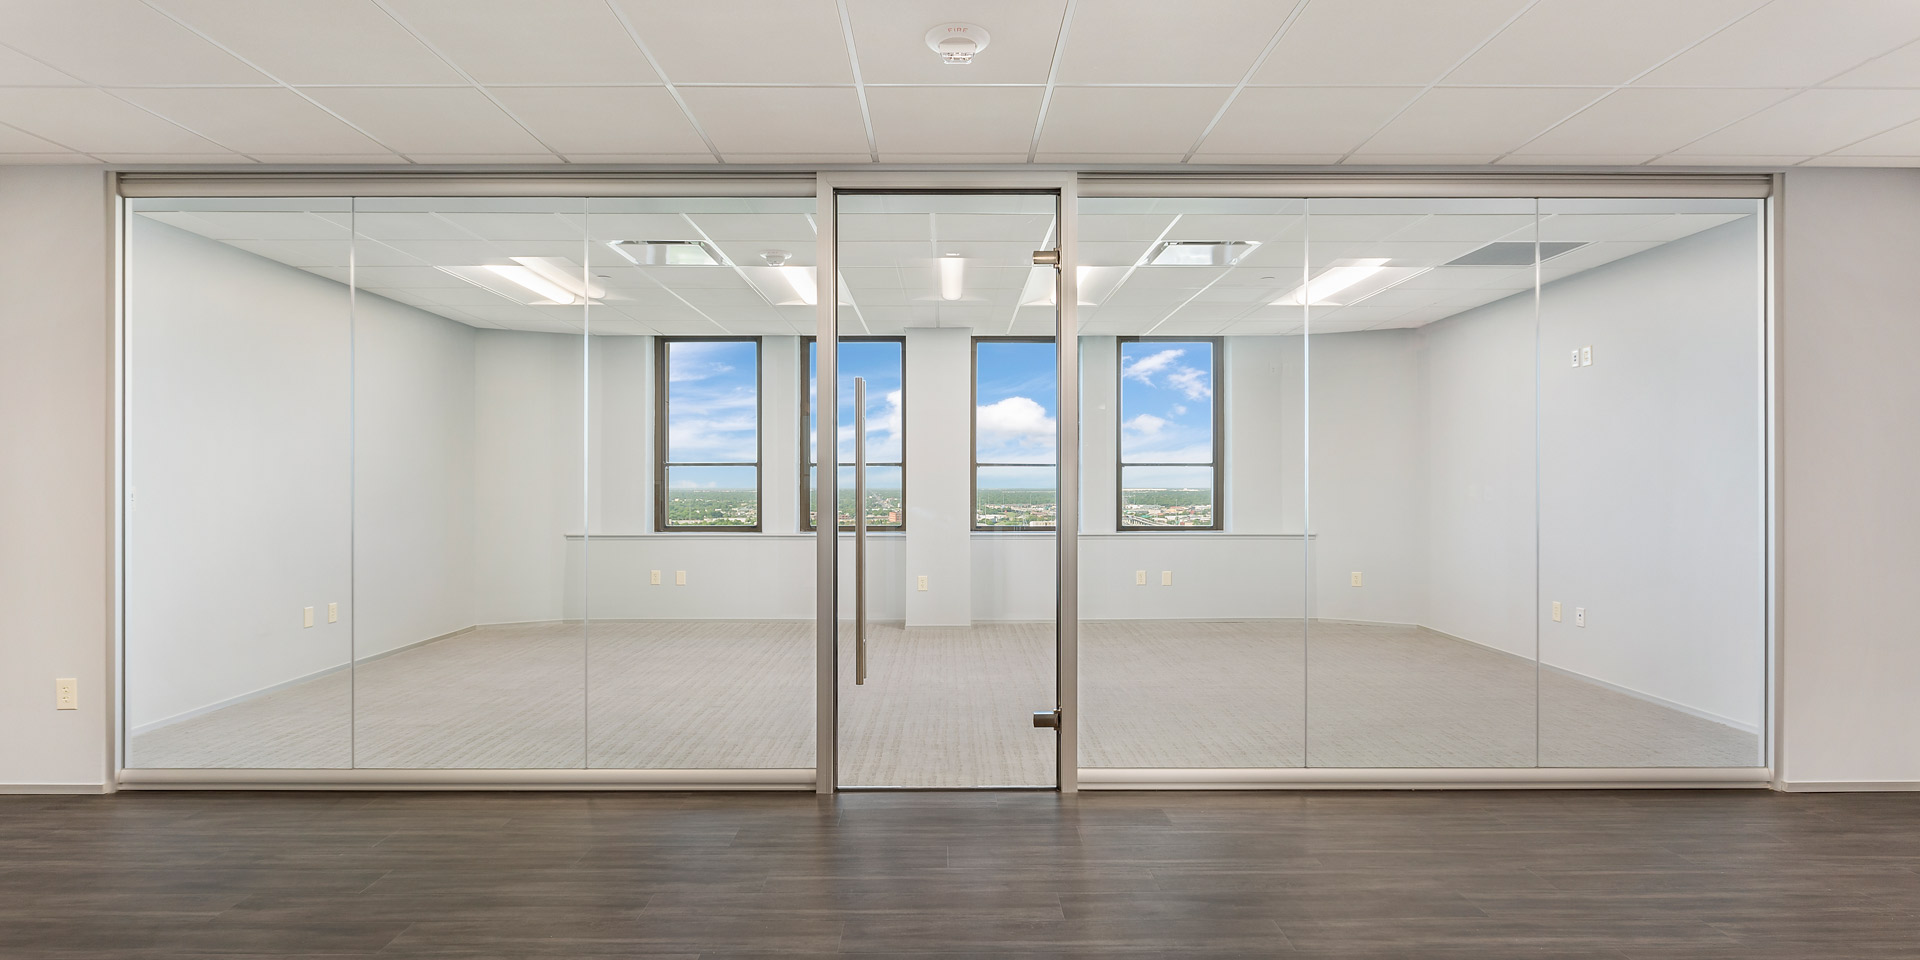 NxtWall View Series Architectural Glass Walls - www.nxtwall.com